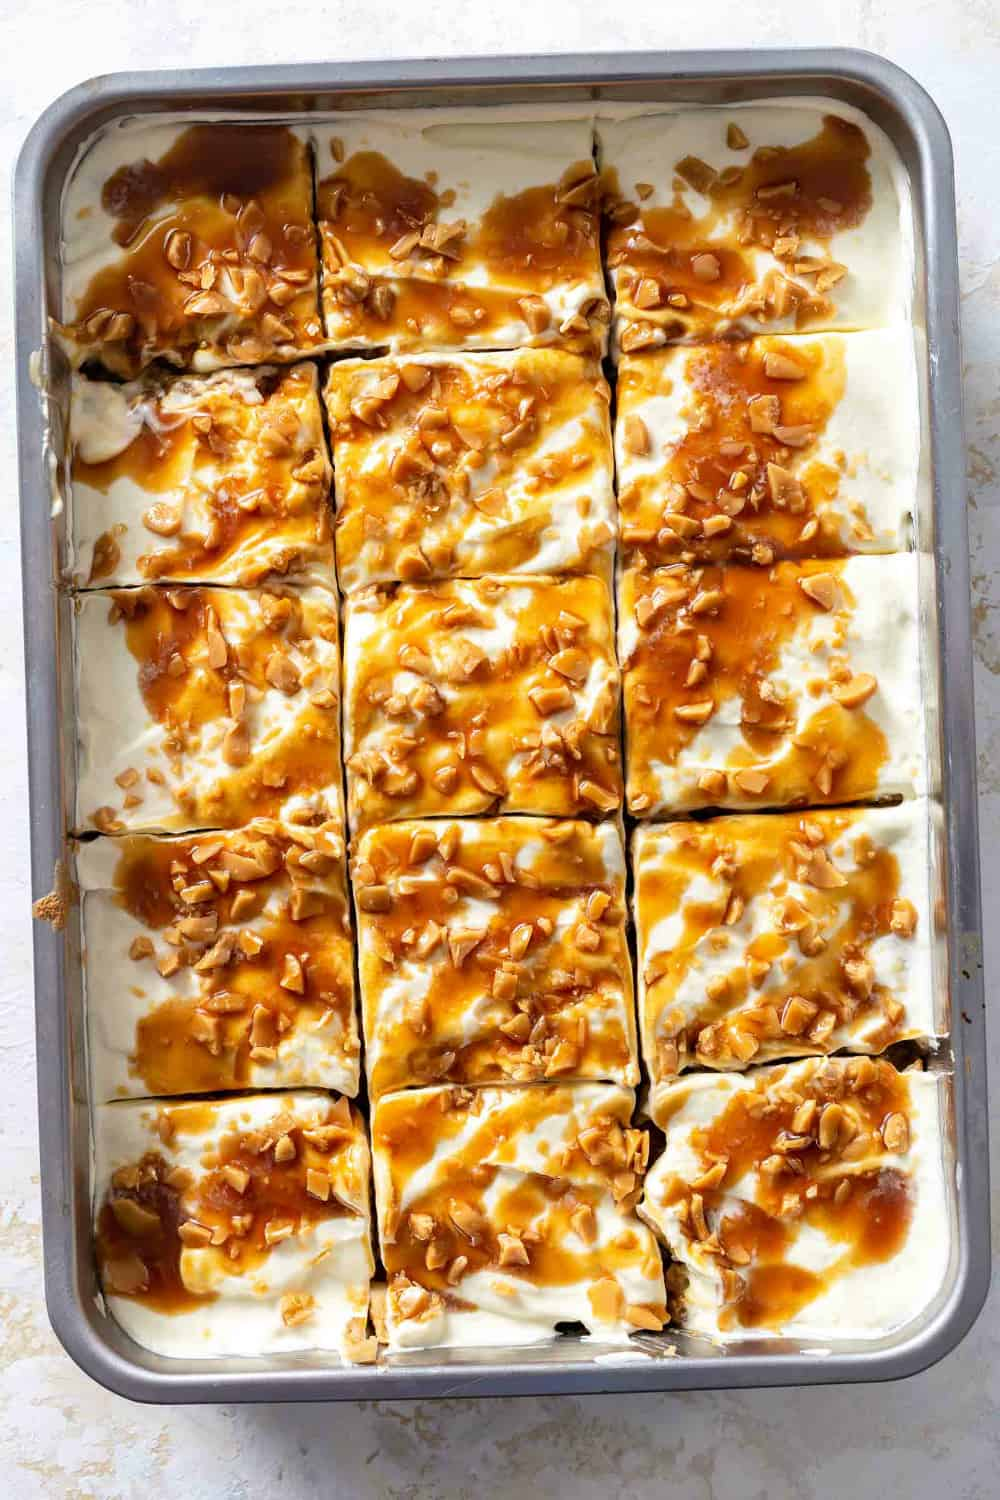 Caramel apple poke cake, sliced in the pan, ready to be served